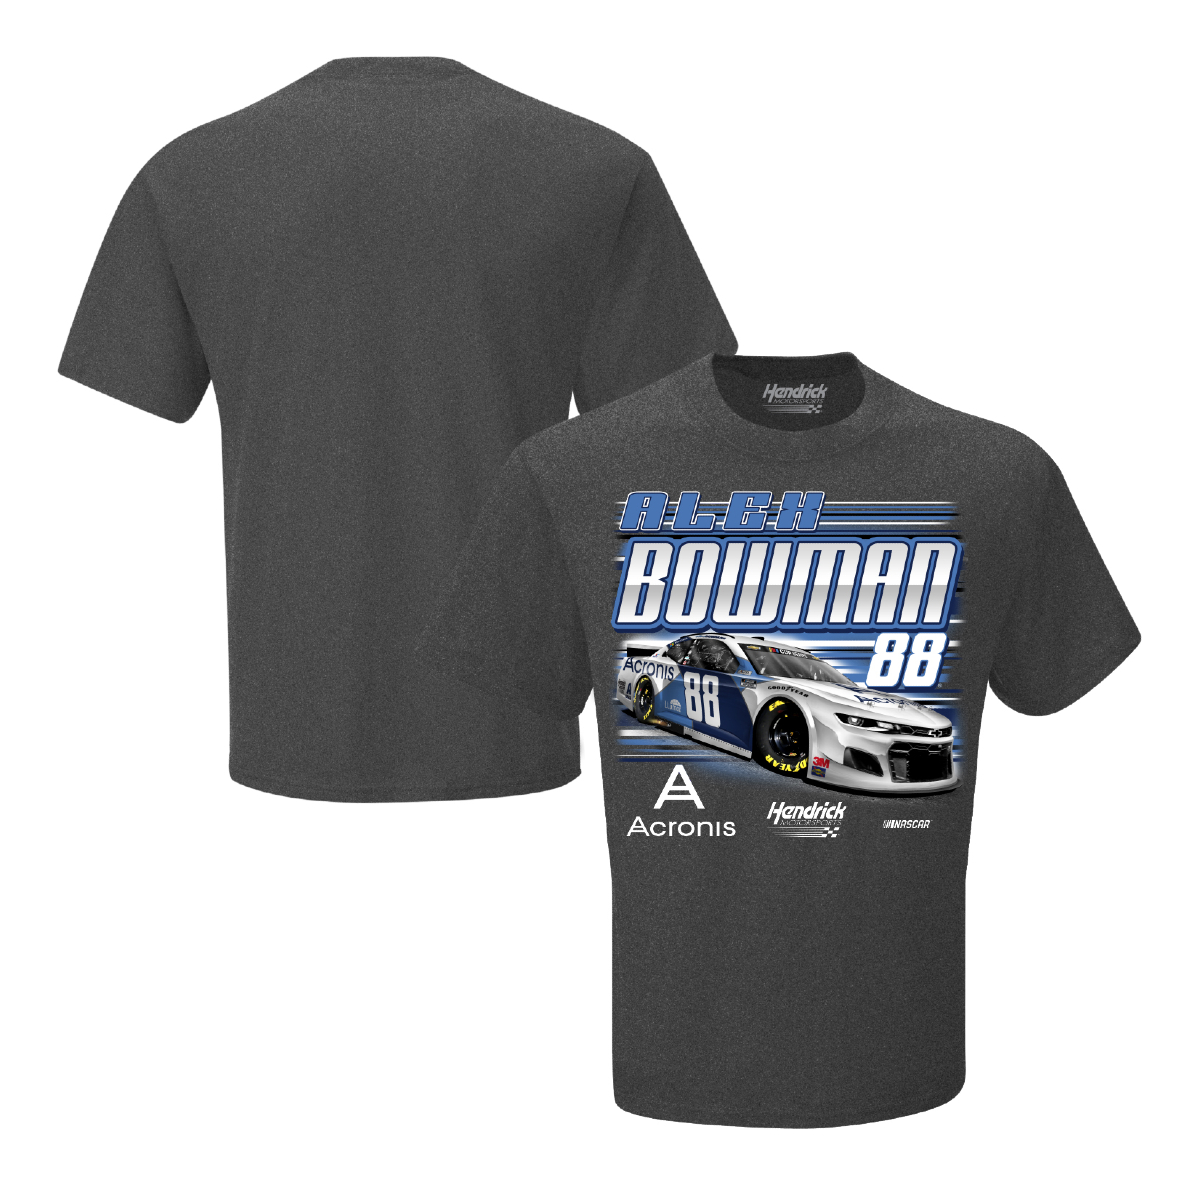 Alex Bowman No. 88 Hendrick Motorsports Team Collection: Acronis Tee